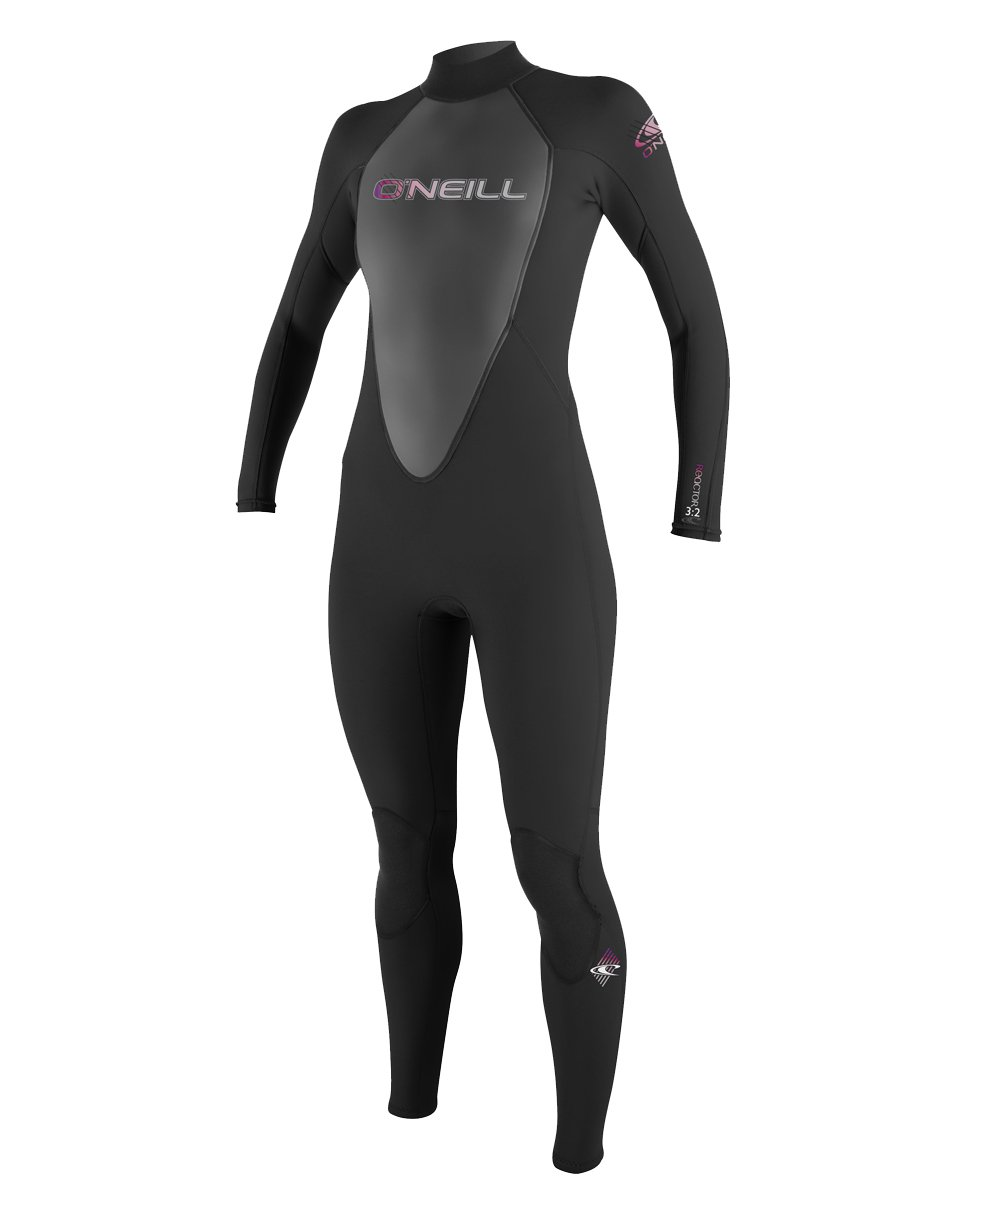 O'Neill   Womens 3/2 mm Reactor Full Suit, Black, 6 by O'Neill Wetsuits (Image #1)